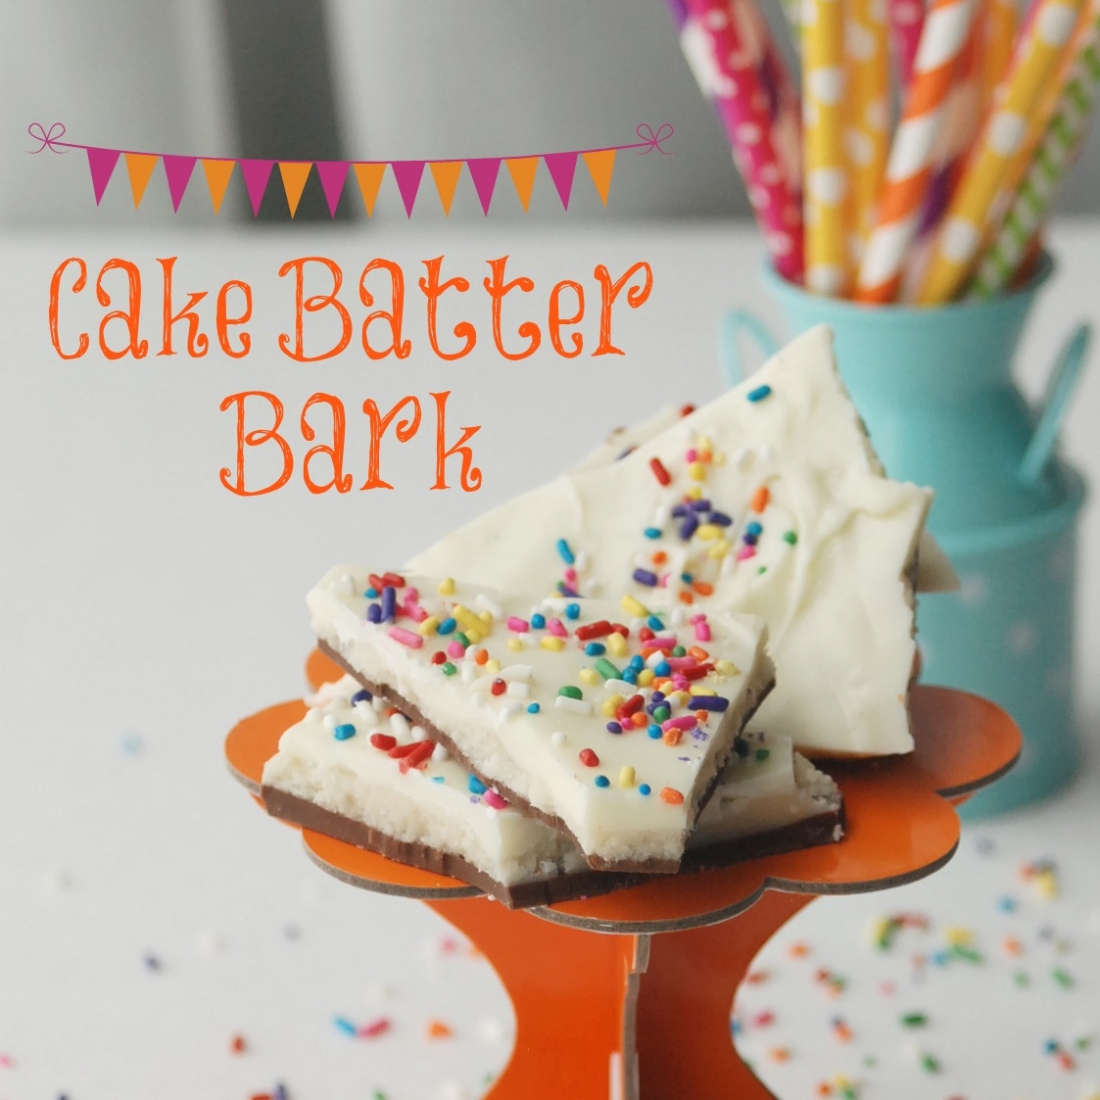 Cake Batter Bark: Sweet, delicious cake batter sandwiched between layers of milk and white chocolate. What a fun treat, and way easier than cake pops!